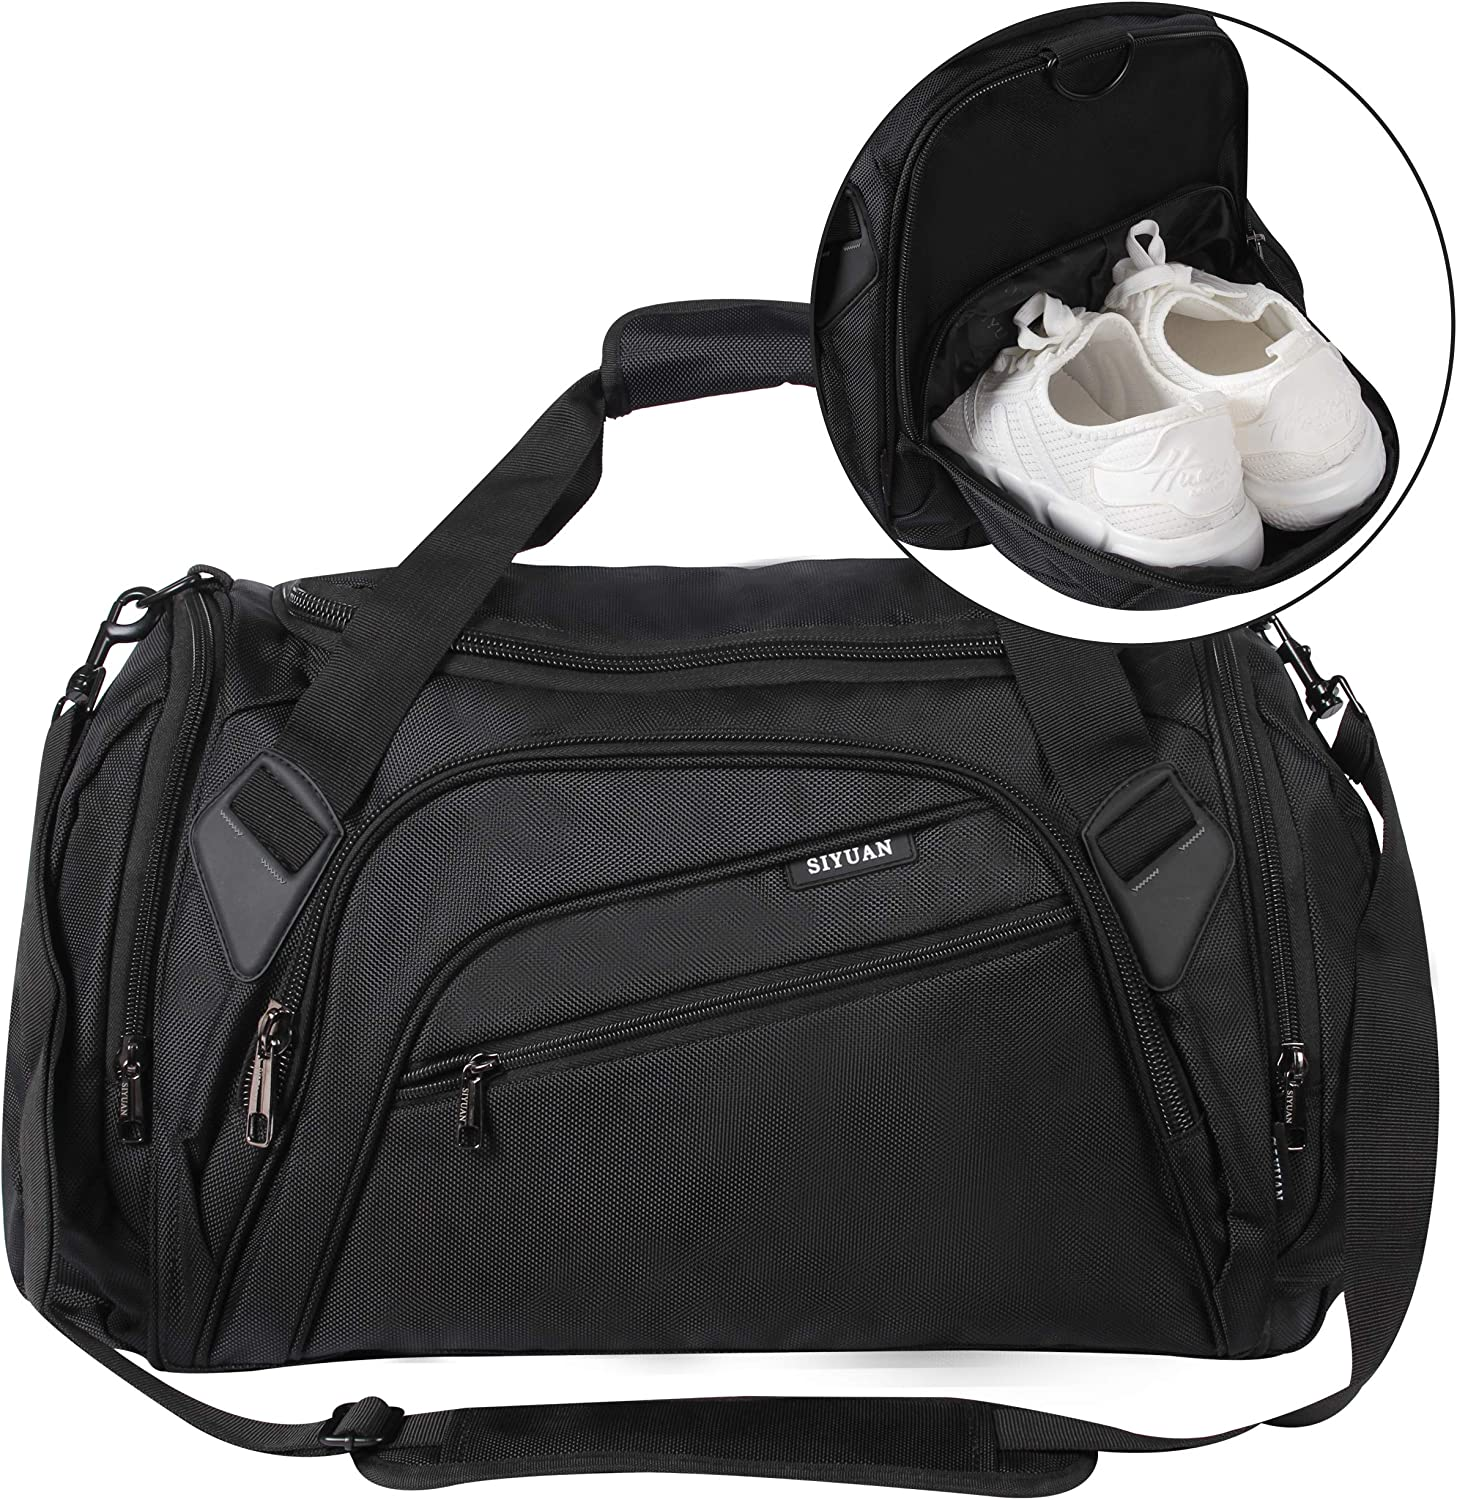 SIYUAN depot Sports Duffel Bag Water with Athletic S Gym Resistant Cheap sale